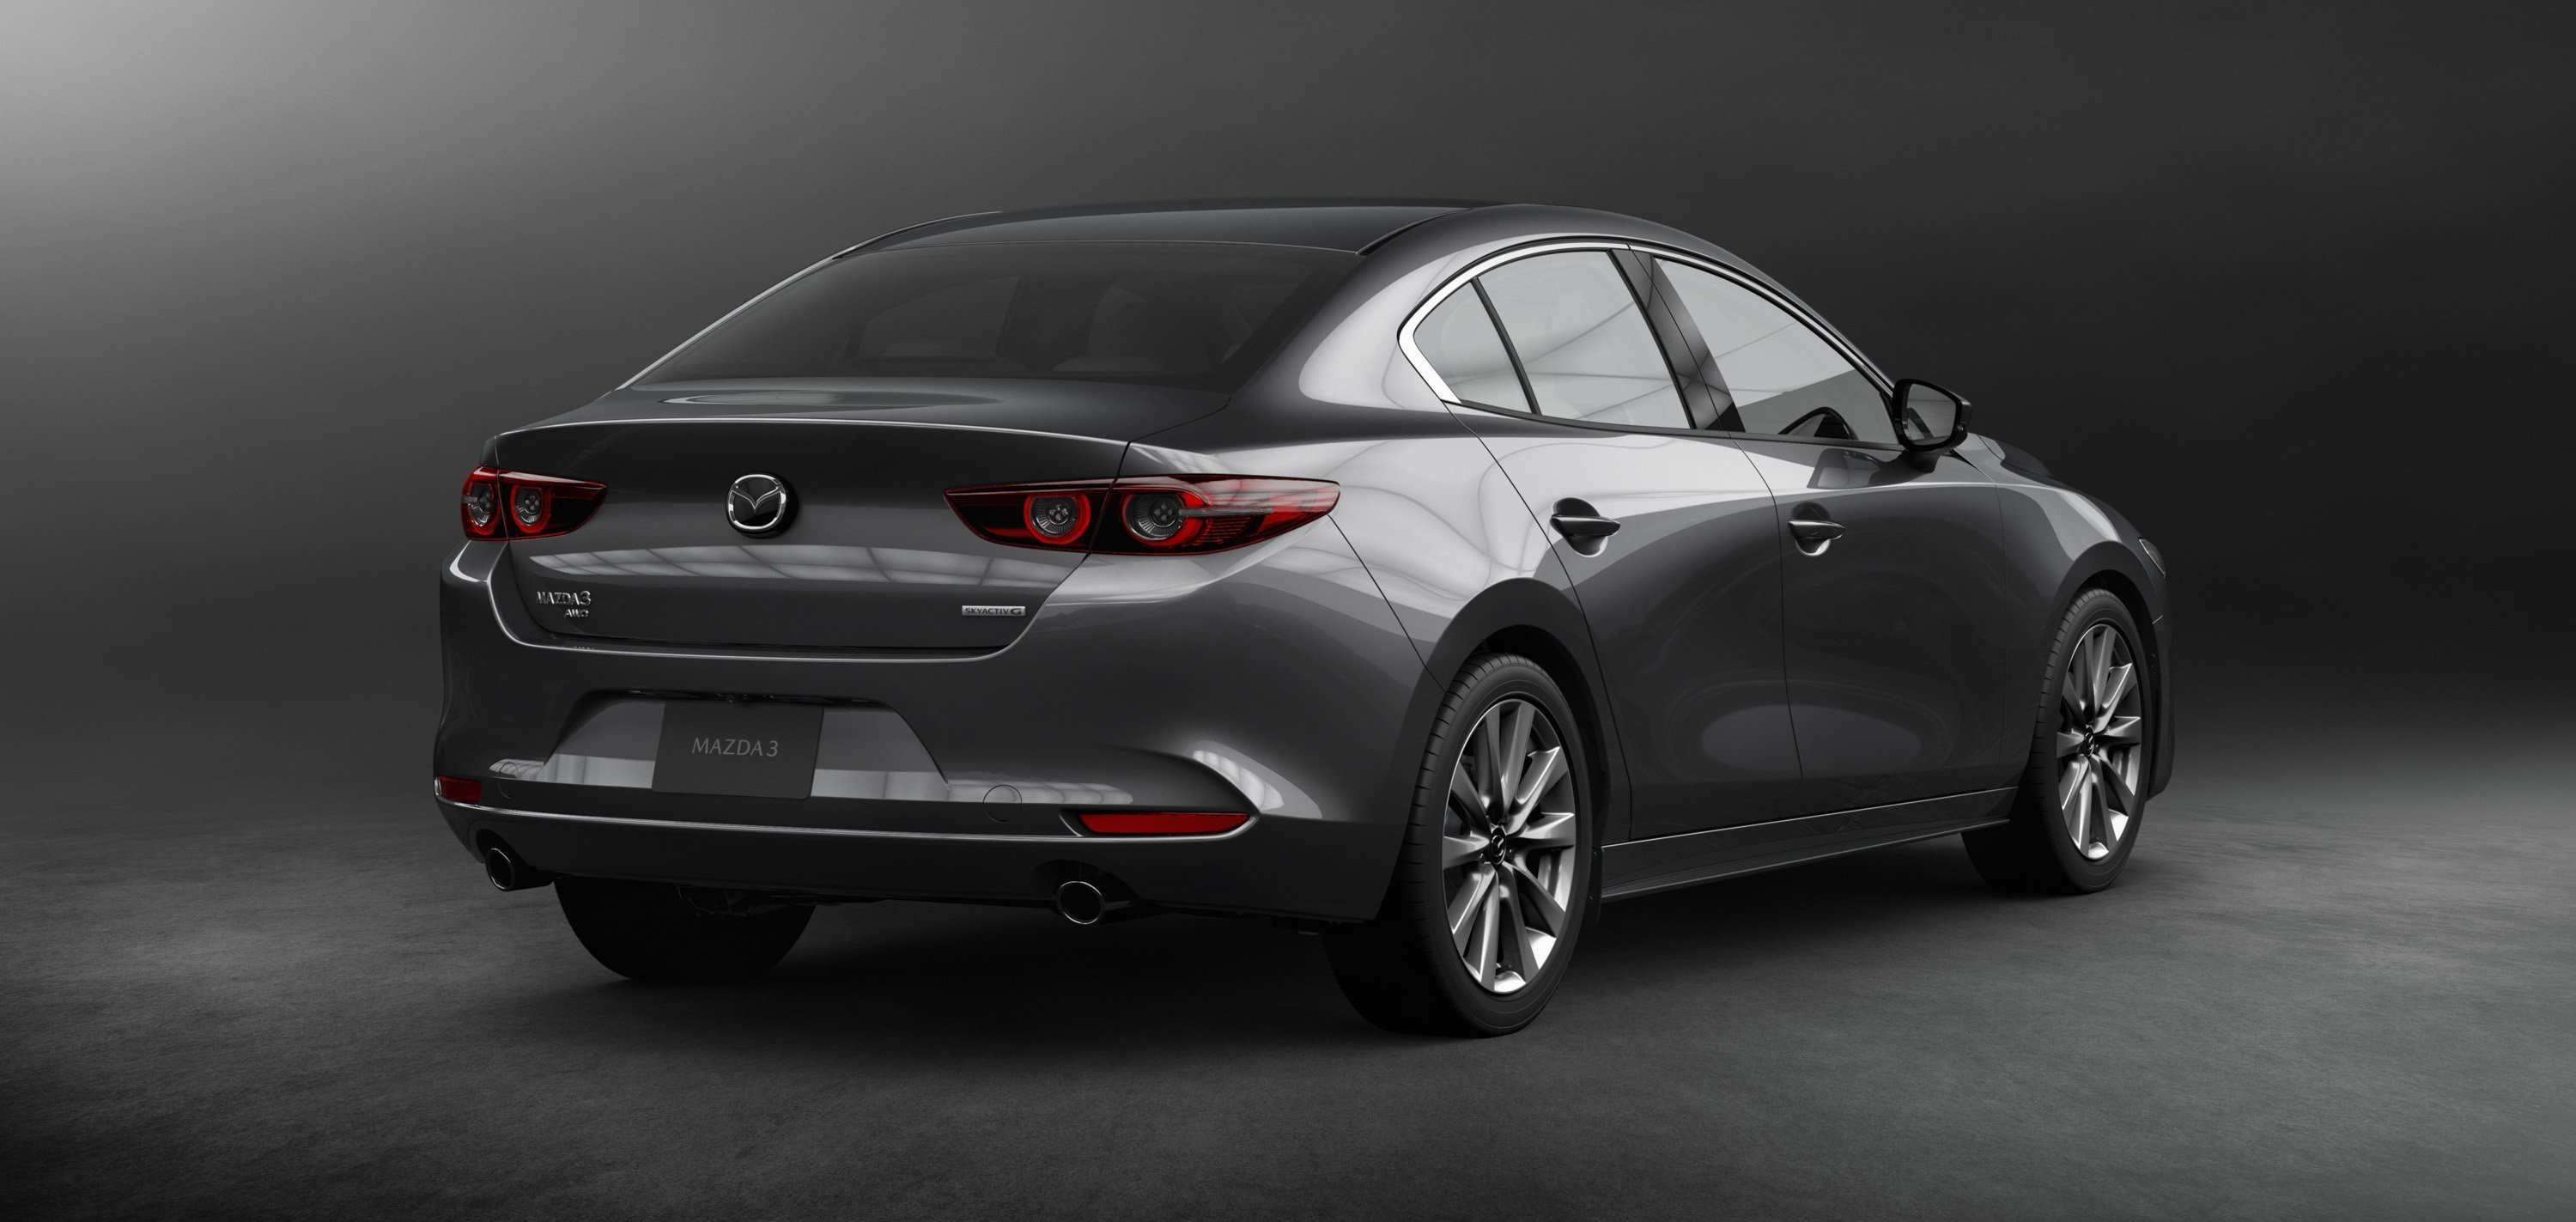 59 New Best Mazda Sport 2019 Exterior Redesign with Best Mazda Sport 2019 Exterior